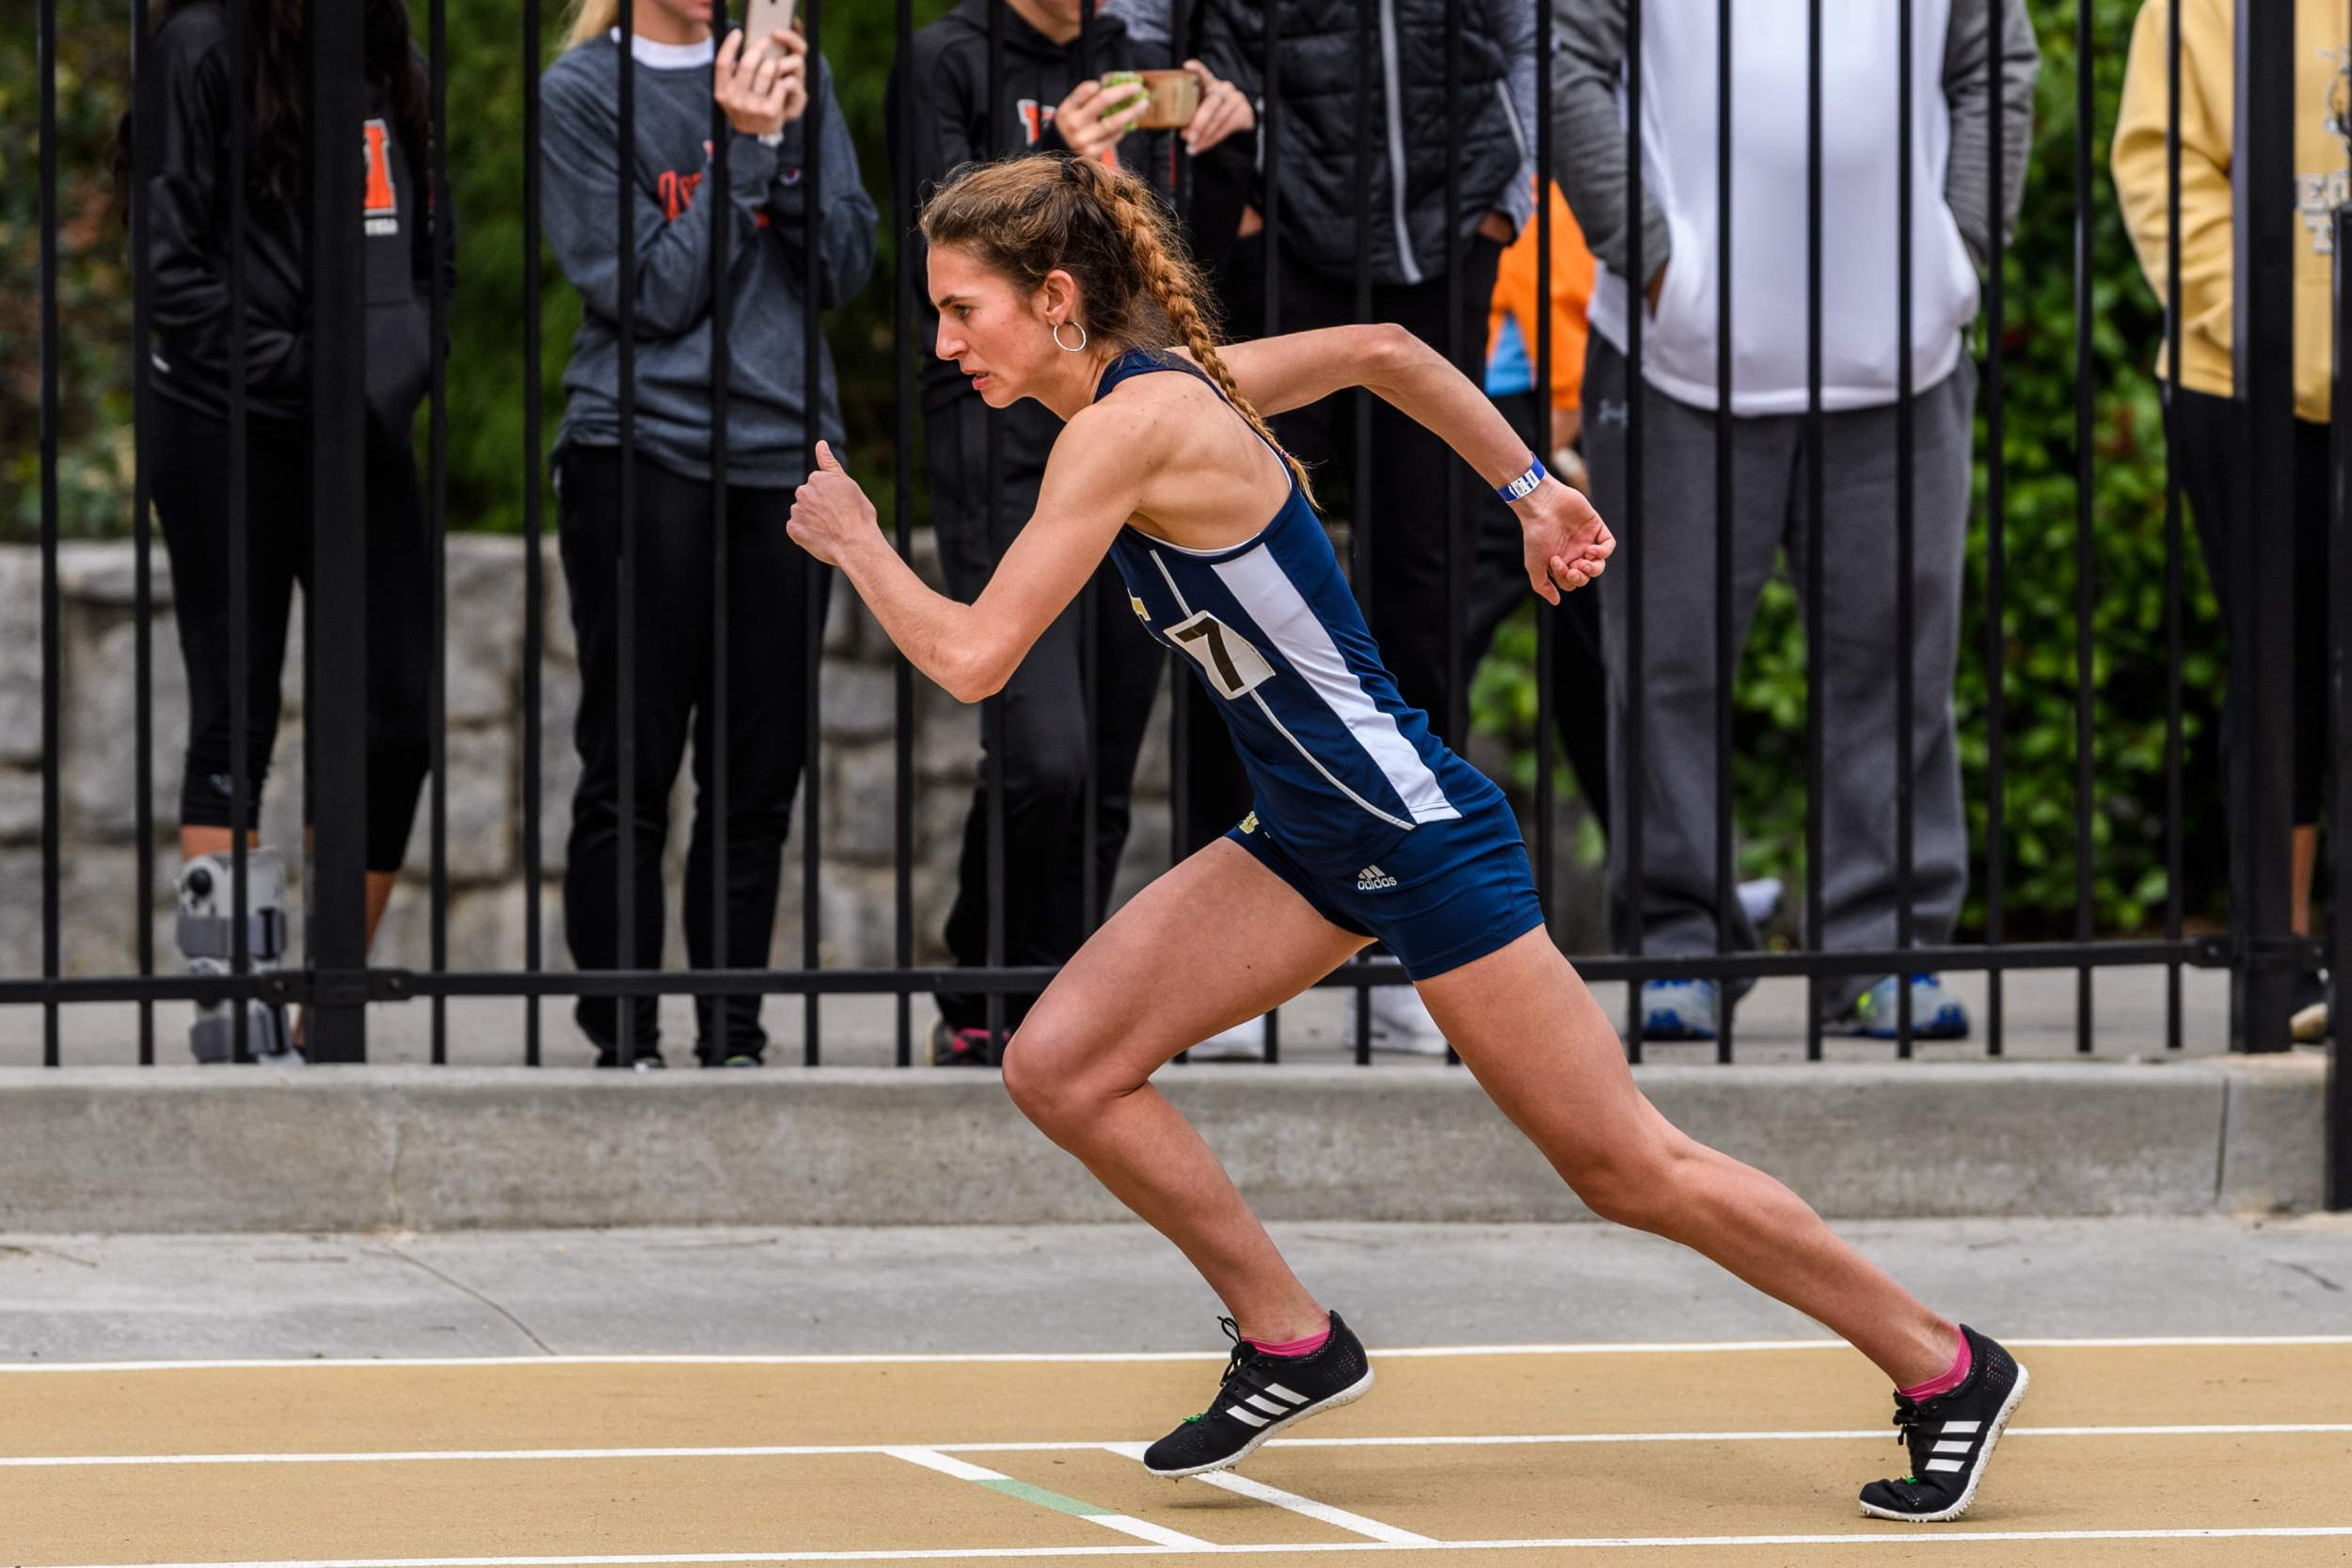 Ruiz Nominated for NCAA Woman of the Year